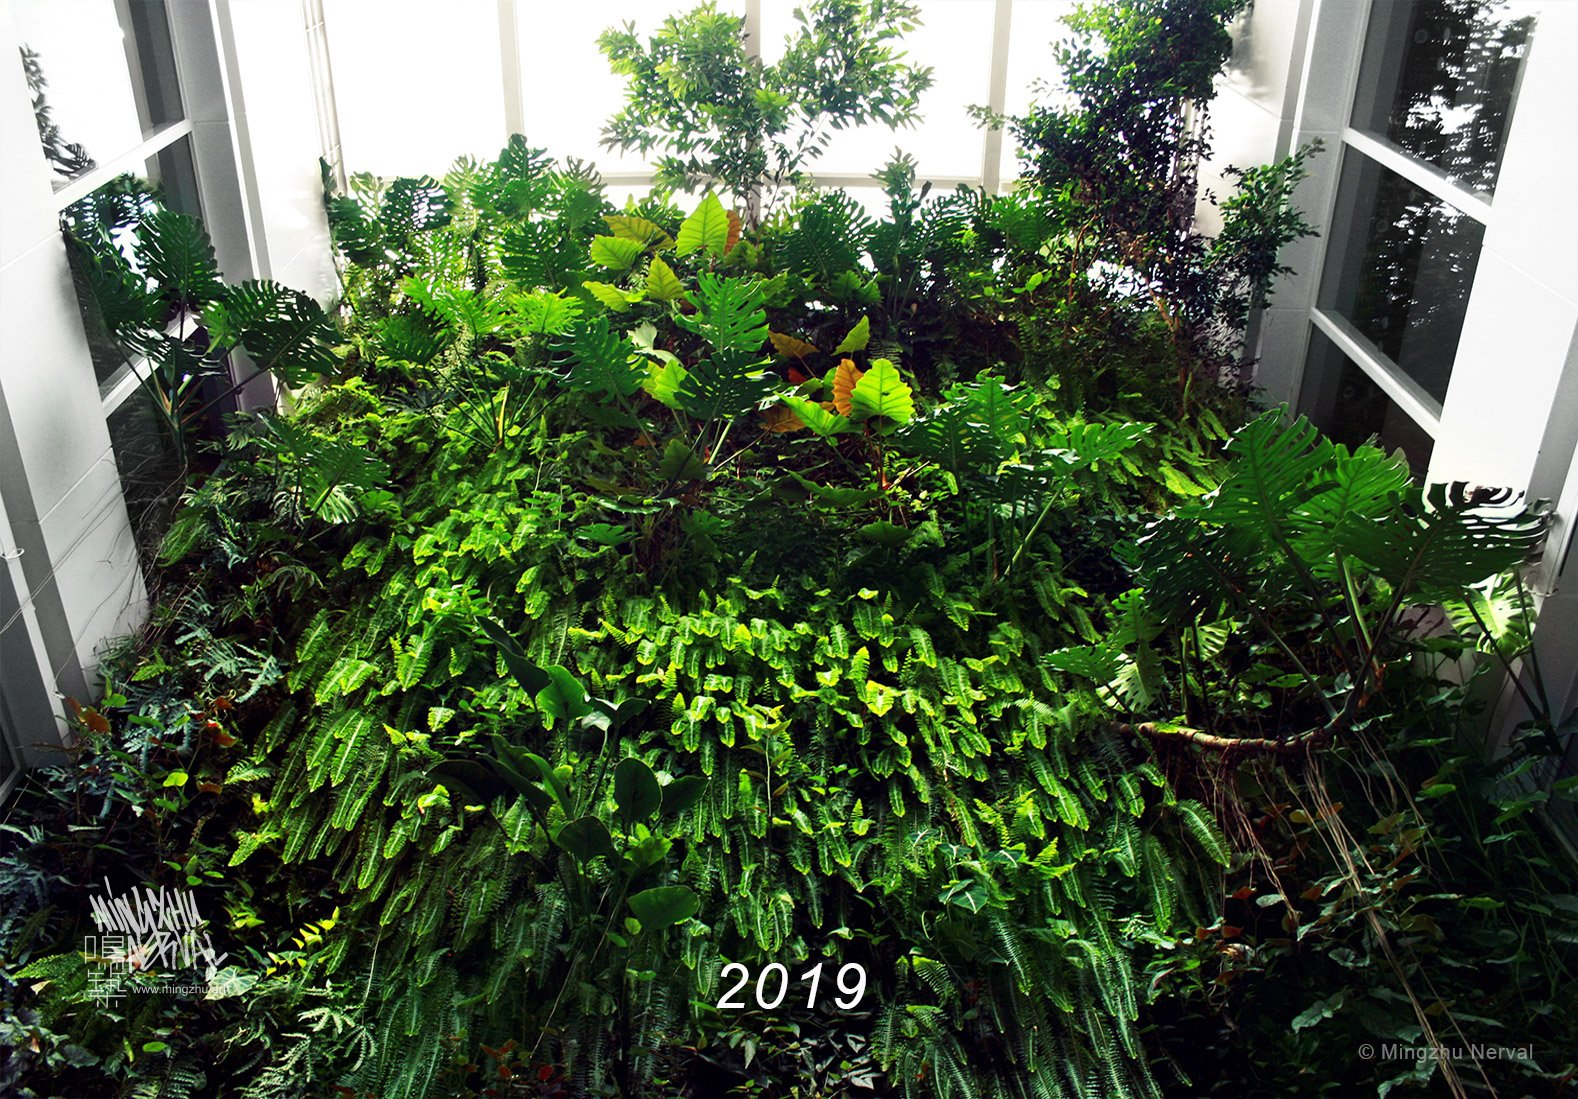 Mingzhu Nerval vertical living wall experts created the best garden design art at Clariant in Shanghai, 2019